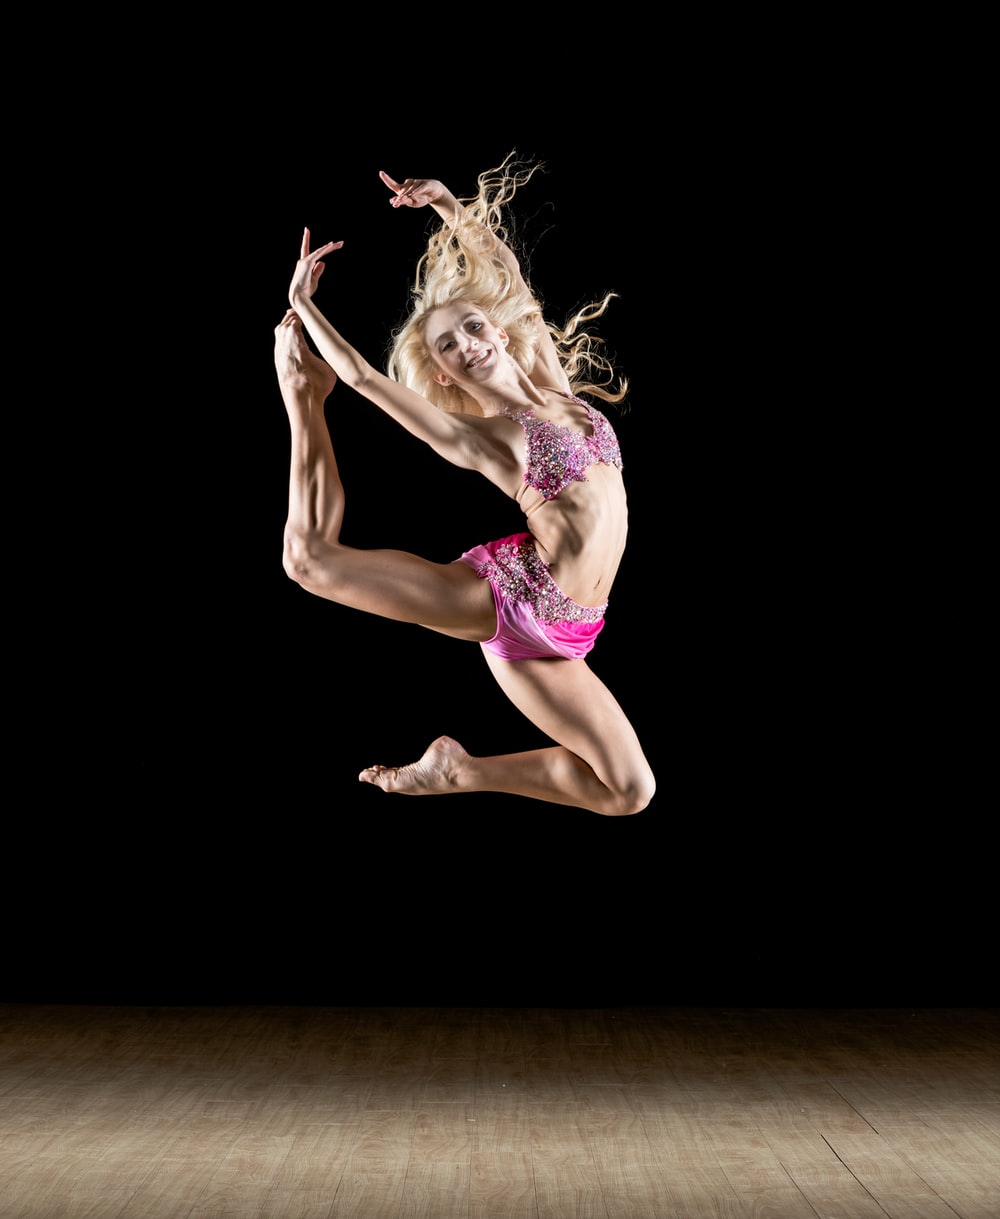 woman stretching her legs and arms in mid air